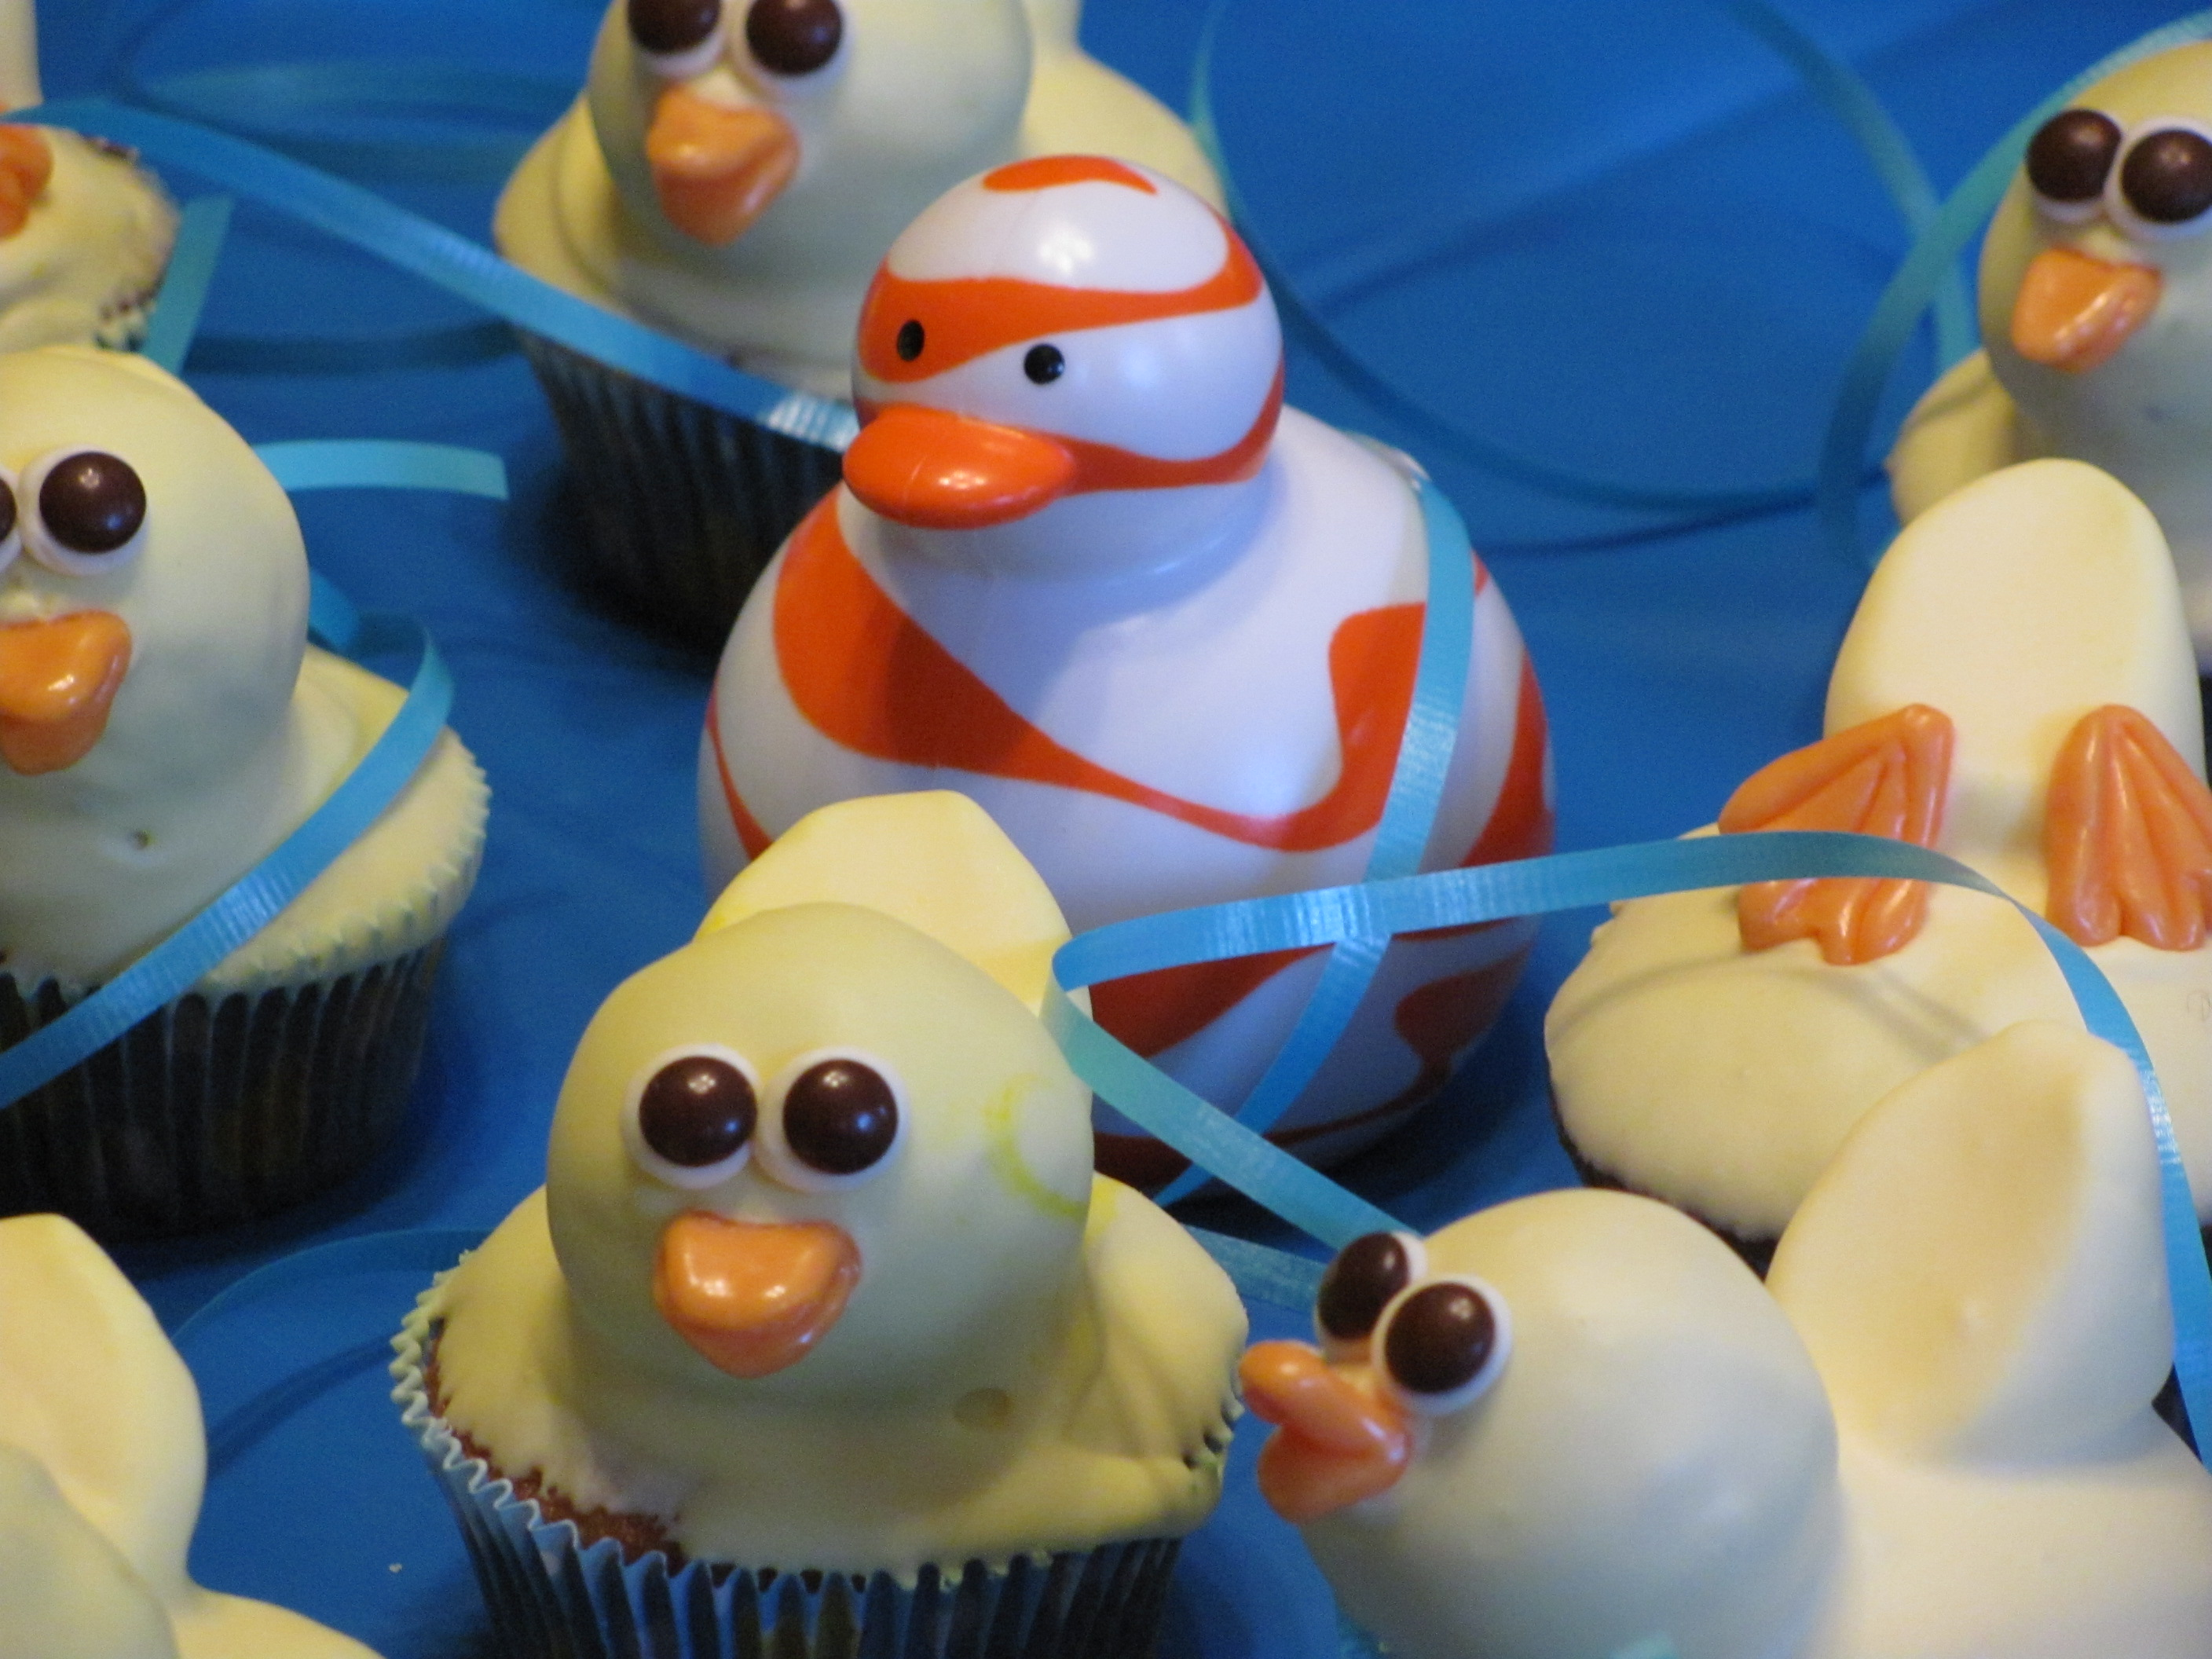 Cute ducky cupcakes! Hey, who's that Odd Duck in there? #Boon